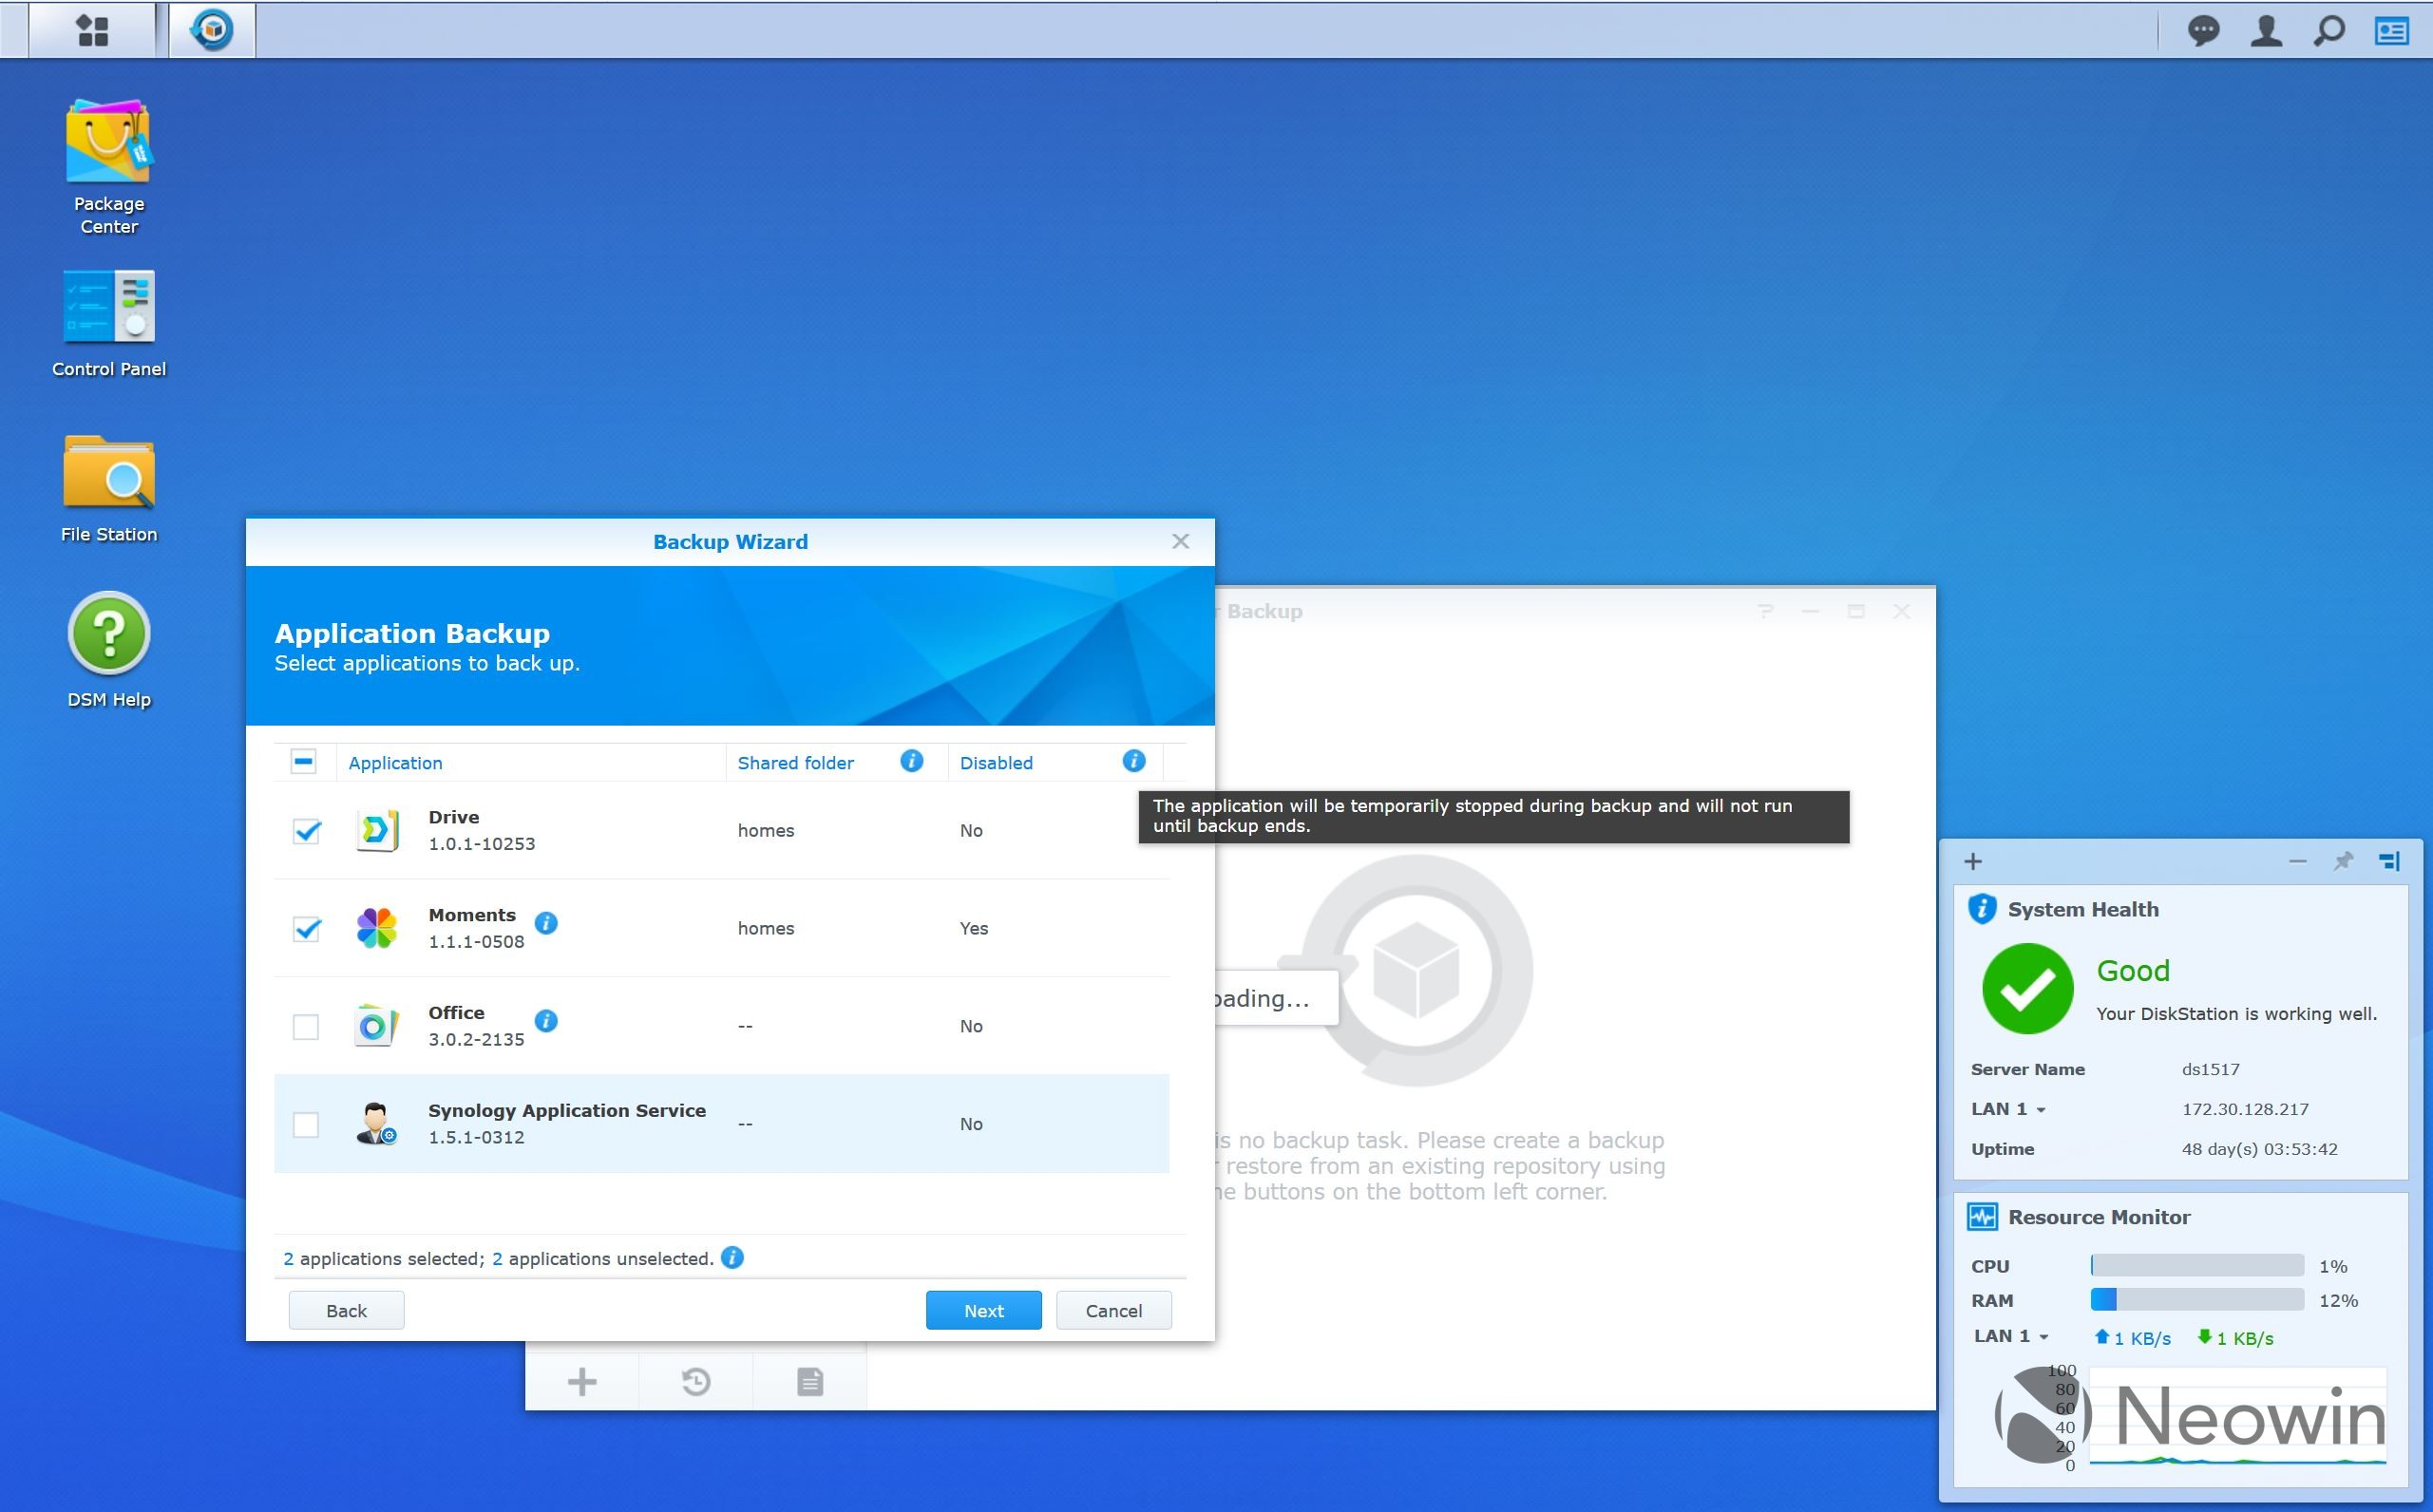 A look at Synology's Hyper Backup tool and C2 cloud backup service